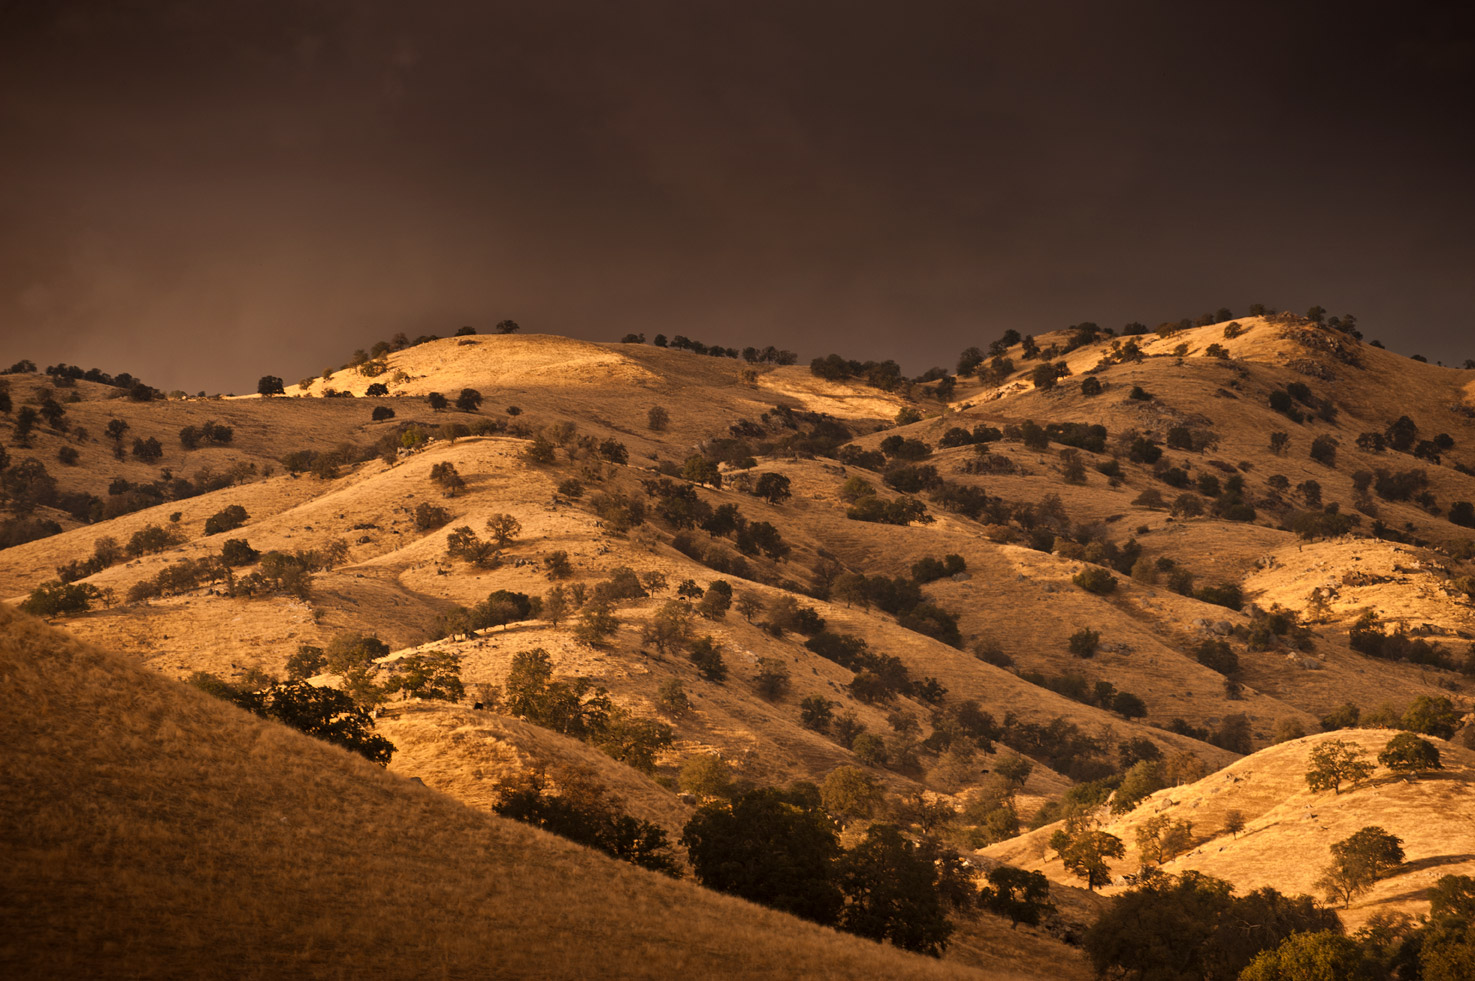 Golden sunlight dapples the hills around the Yokohl Valley, California